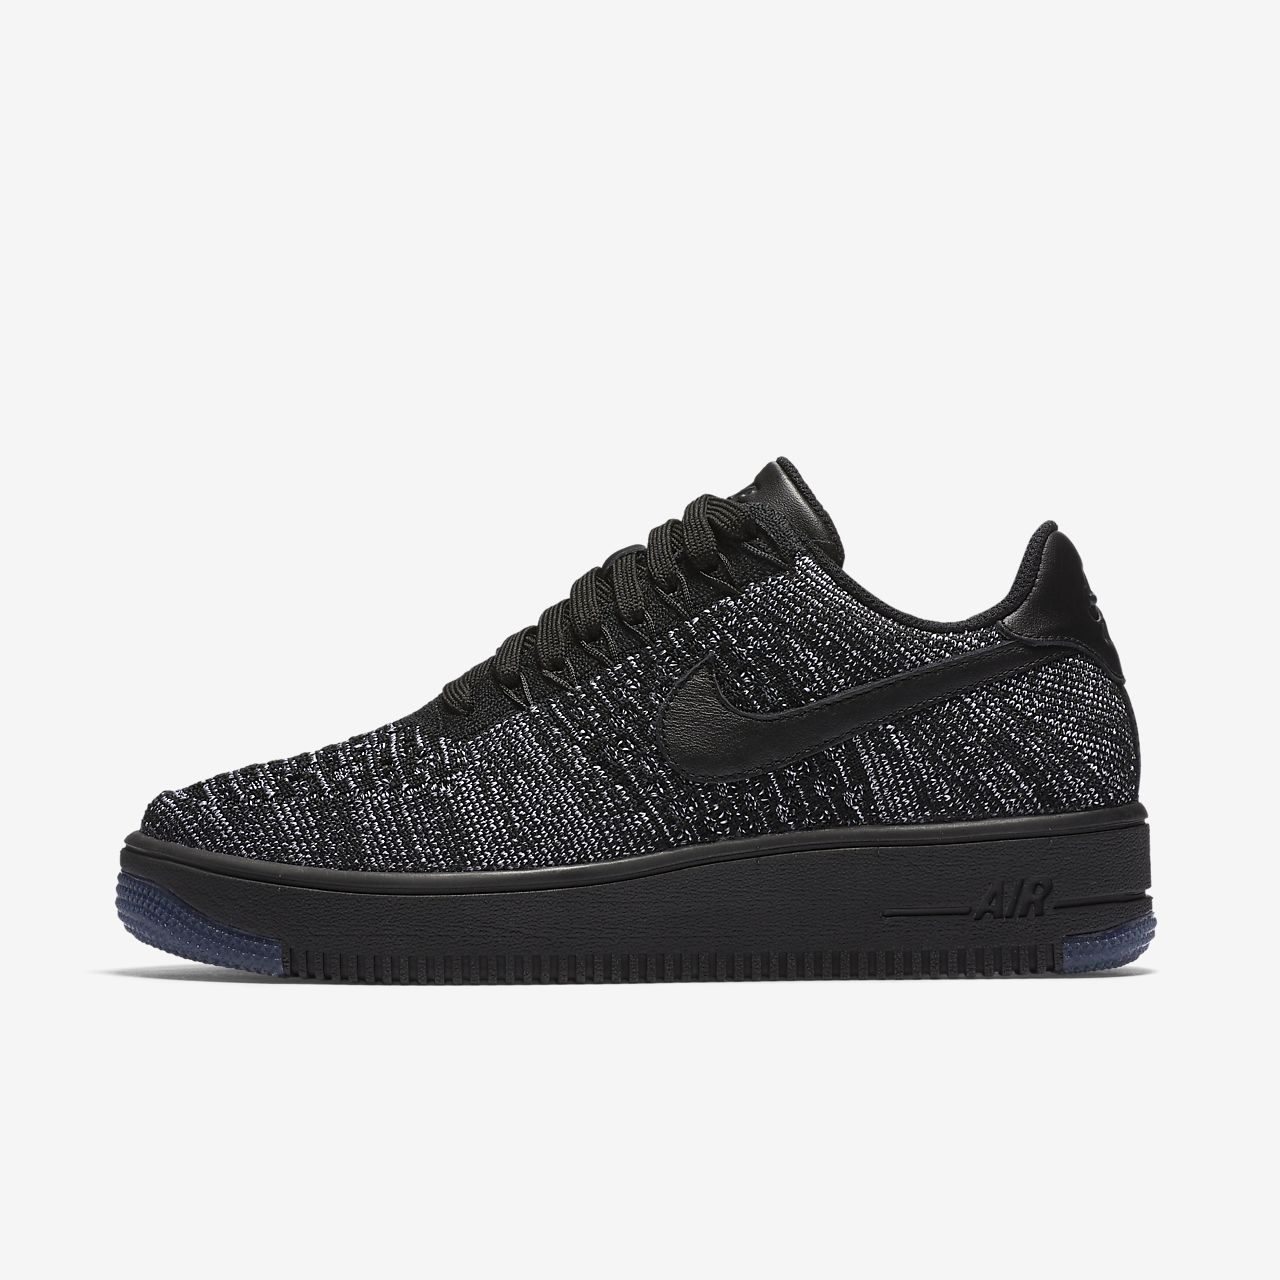 Nike Air Force Flyknit Bas Noir